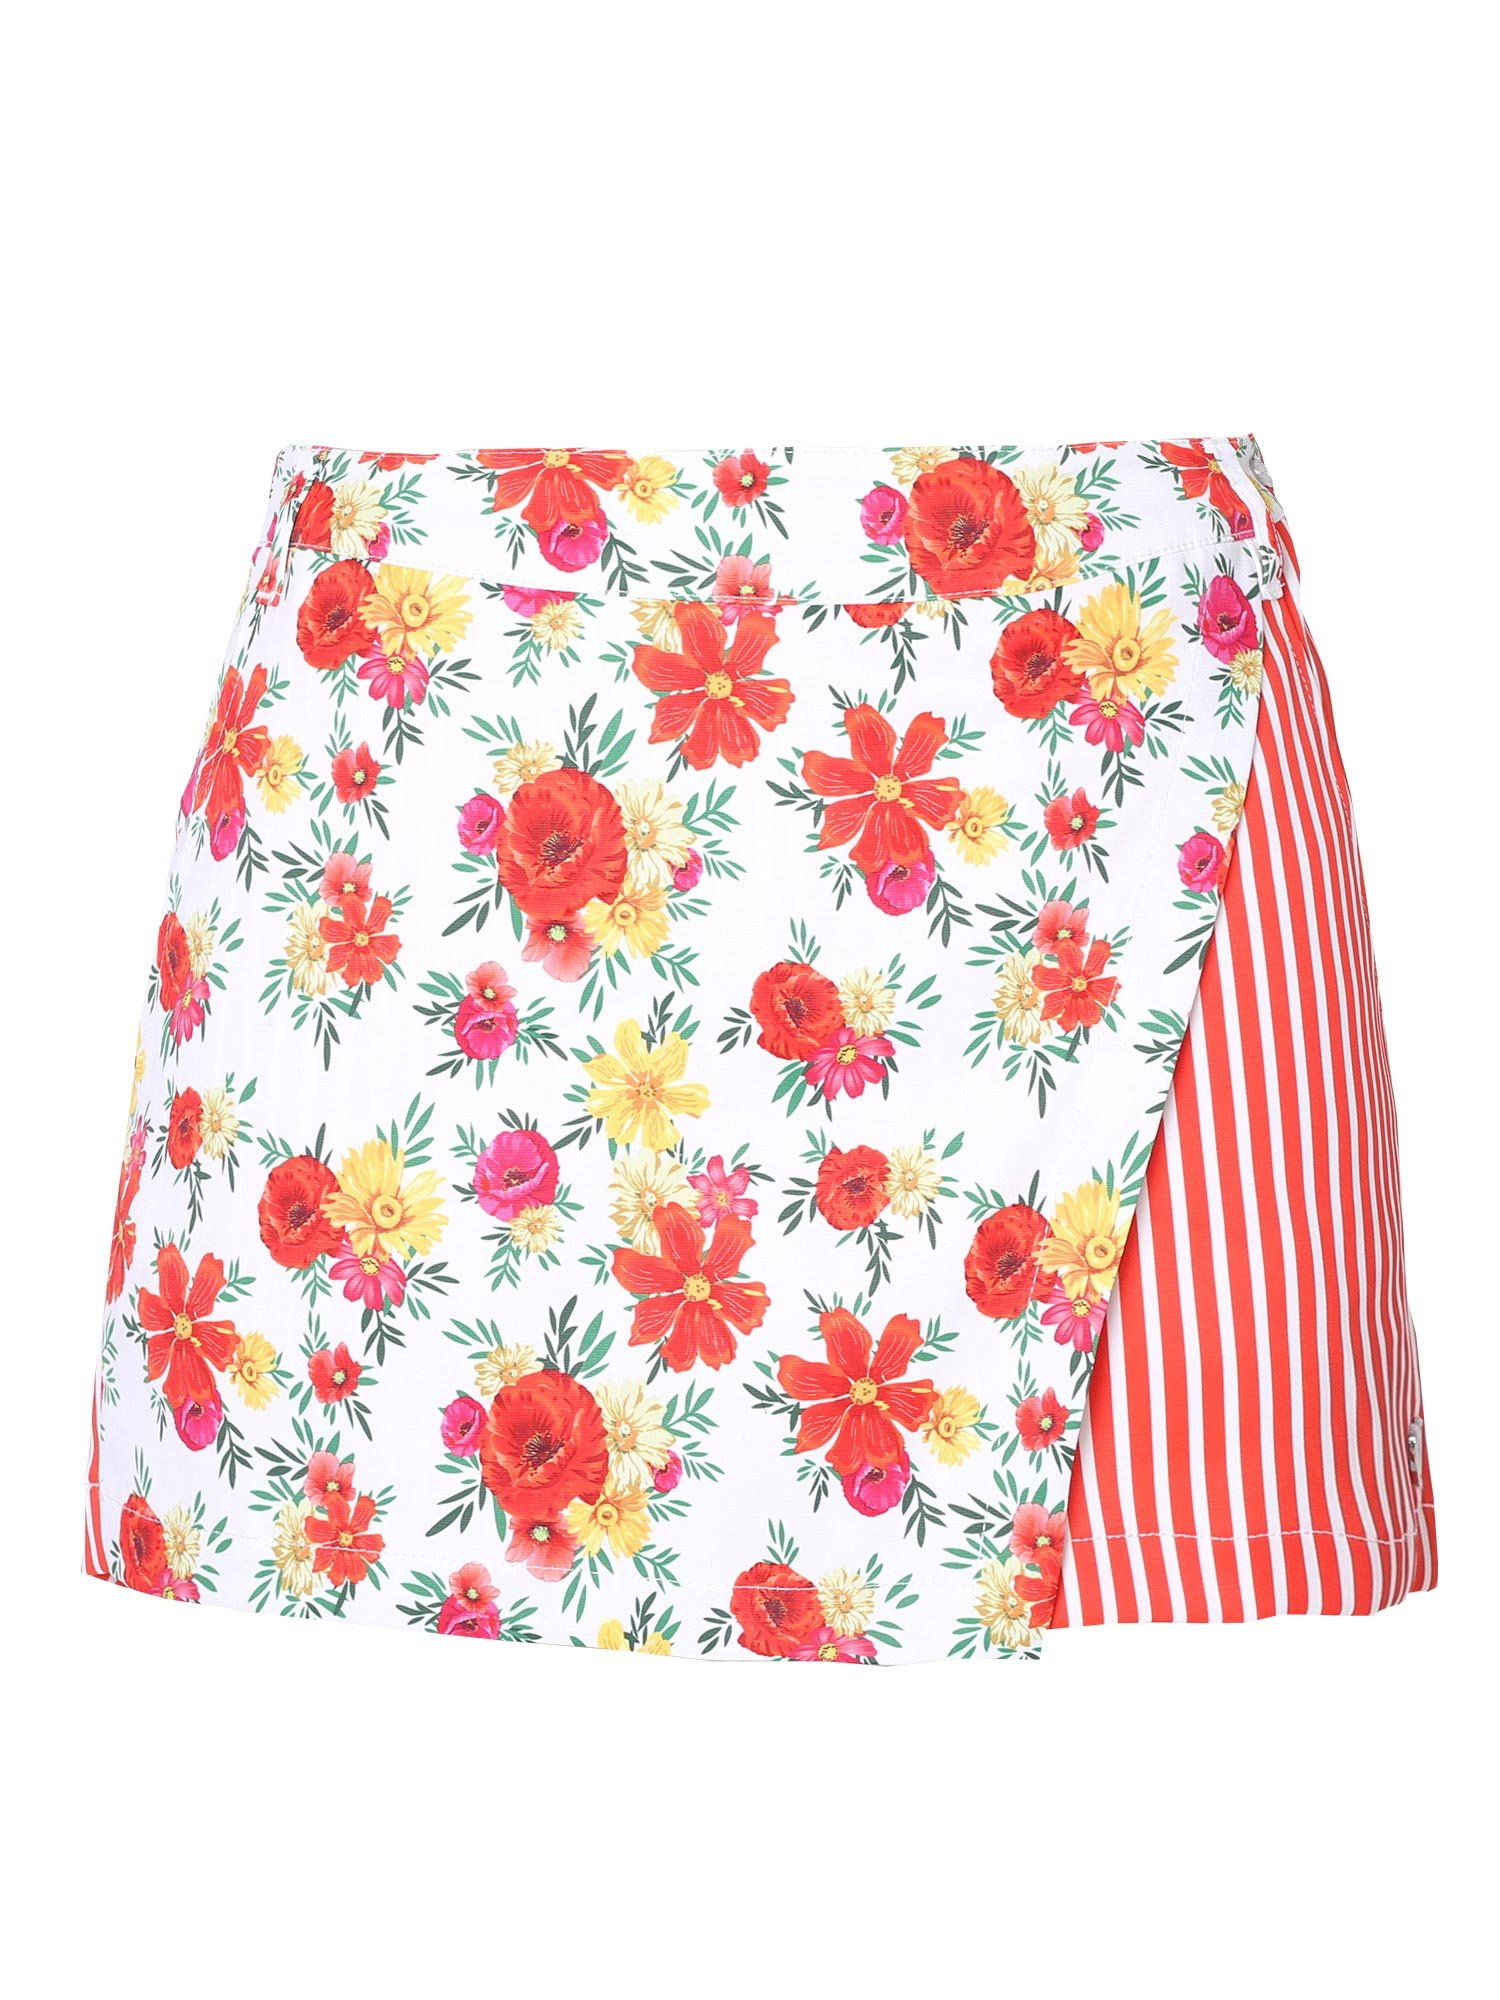 SunviewGolf Women's Floral Print Golf Skorts/Shorts Striped Casual Shorts M